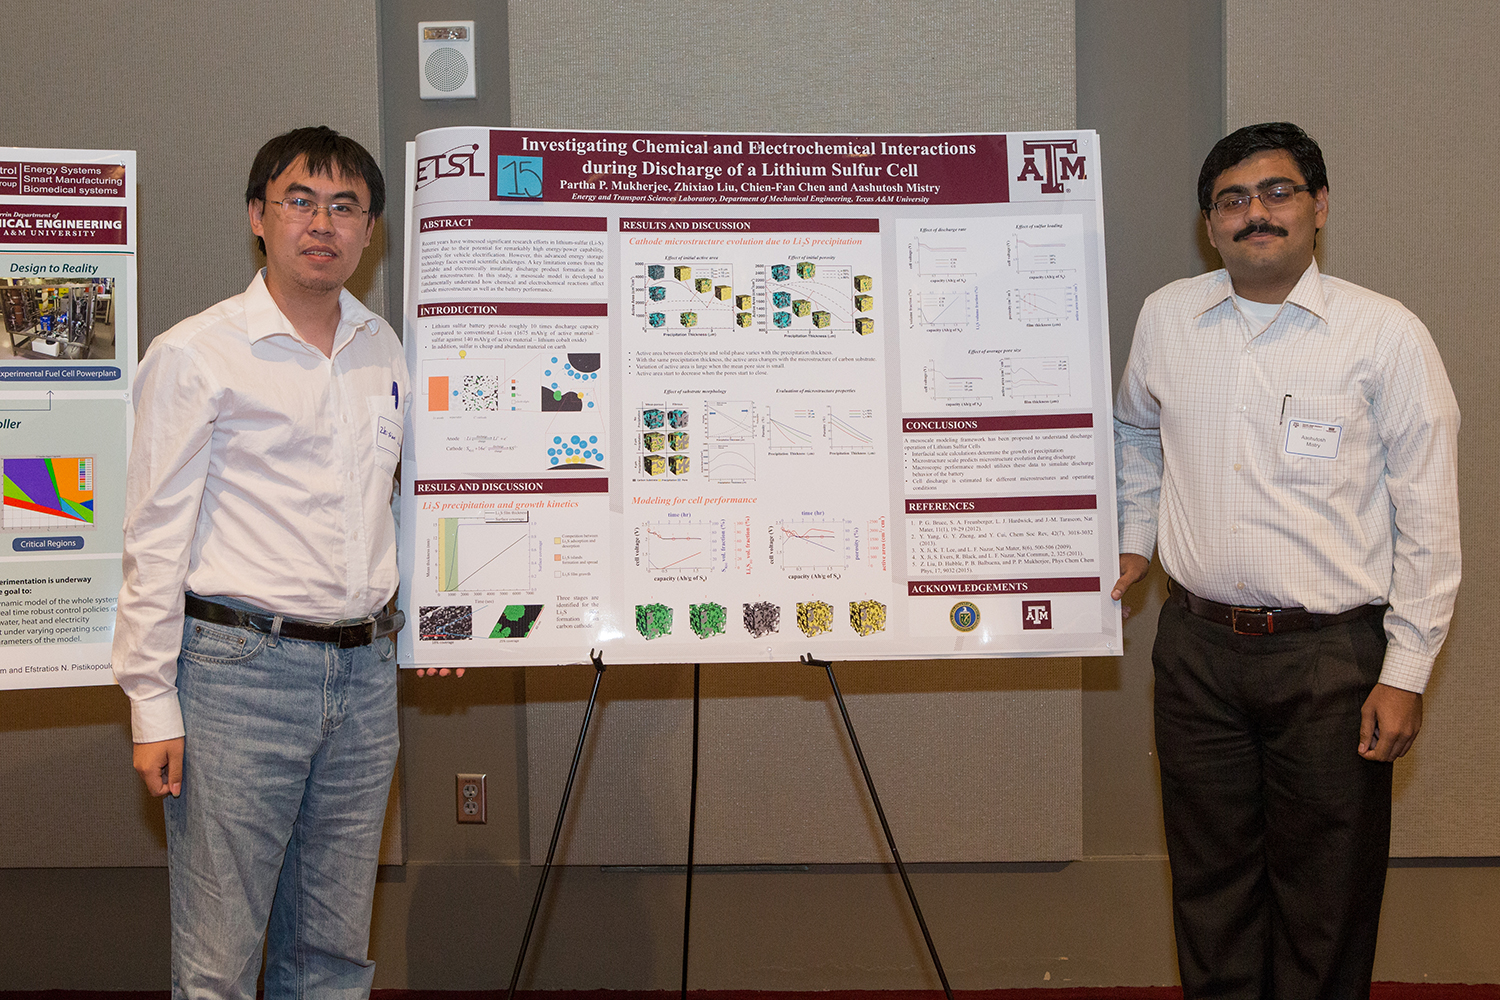 First Place, Poster Contest: Zhixiao Liu and Aashutosh Mistry - Research Workshop on Non-Fossil-based Technologies for Energy